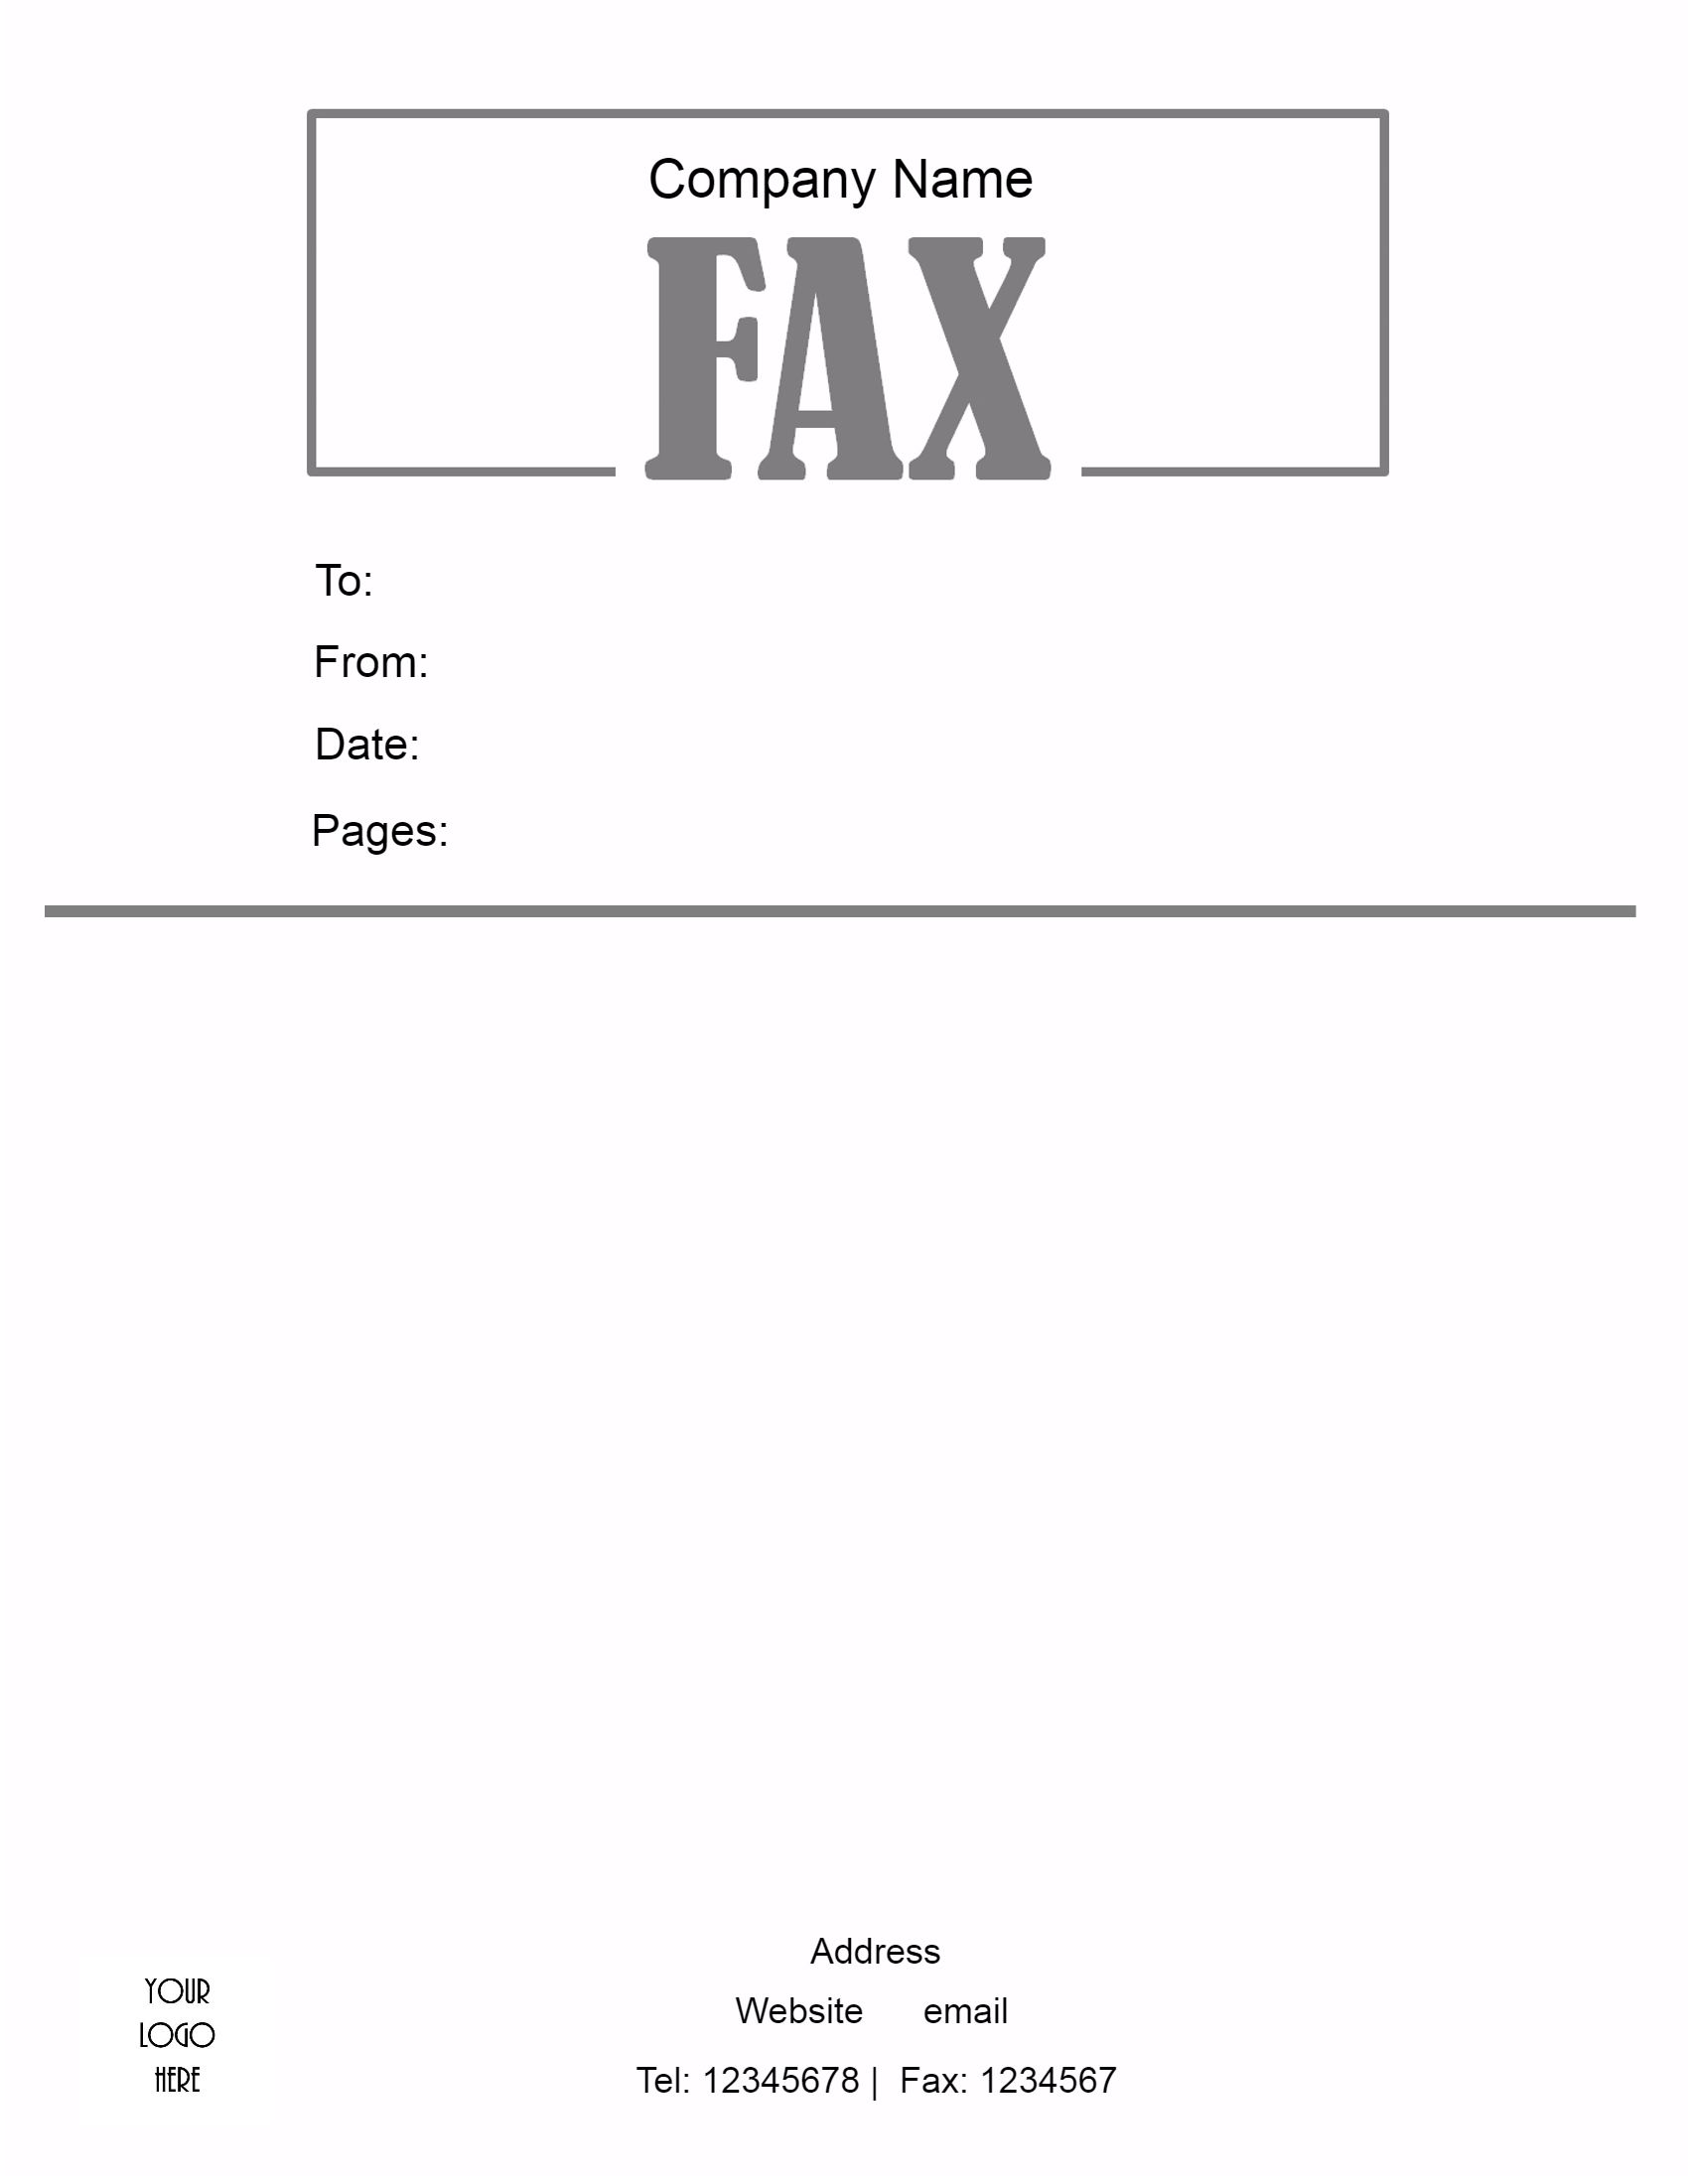 fax cover letter template fax cover sheet